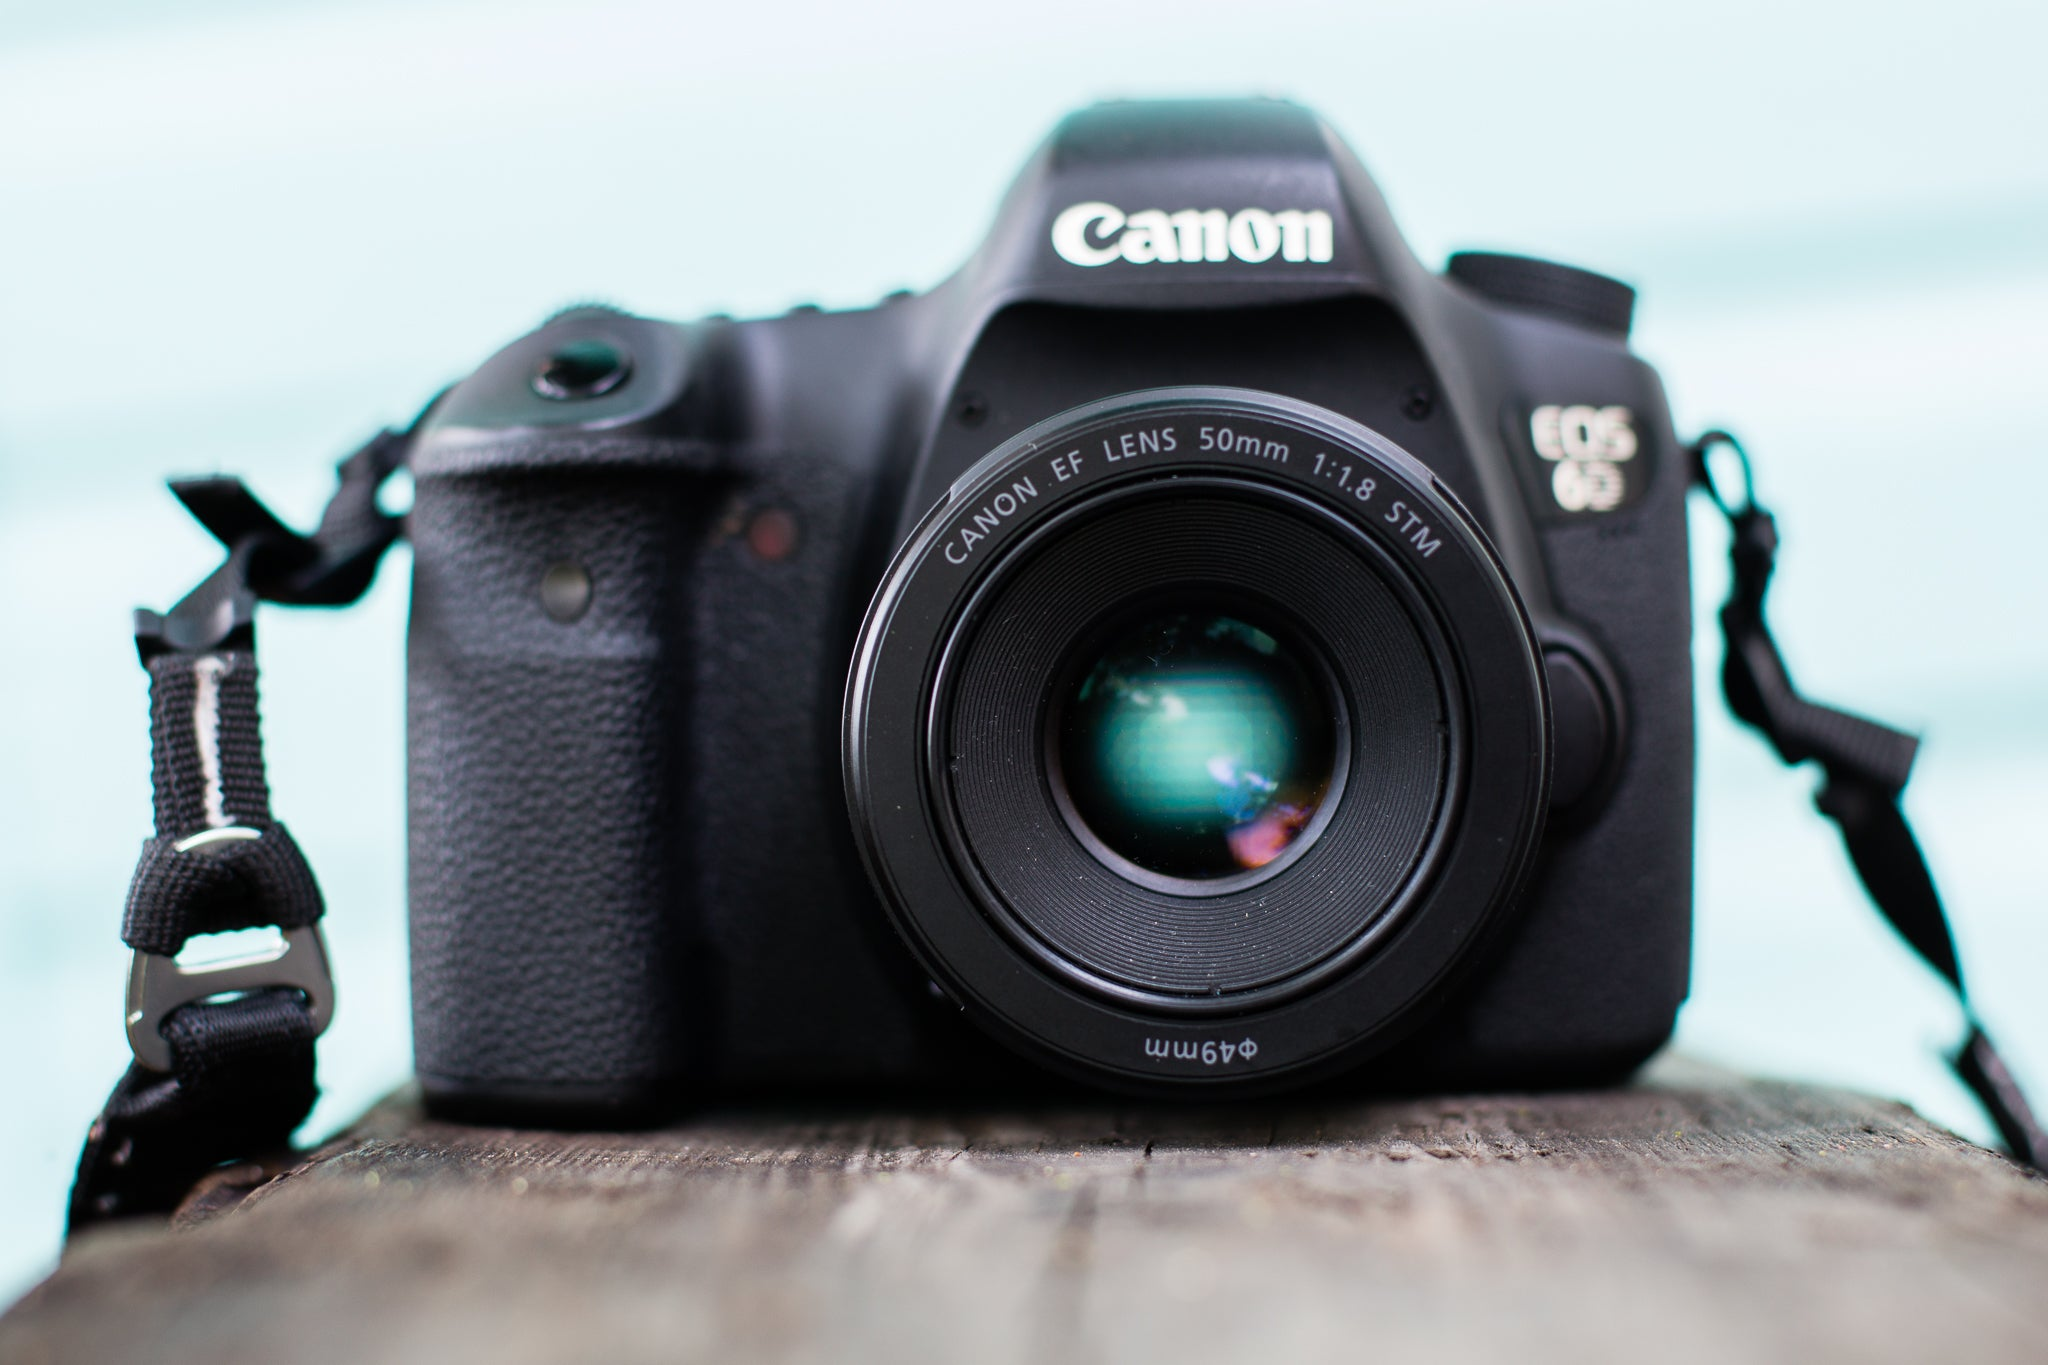 Canon 50mm F/1.8 STM Lens Test Review